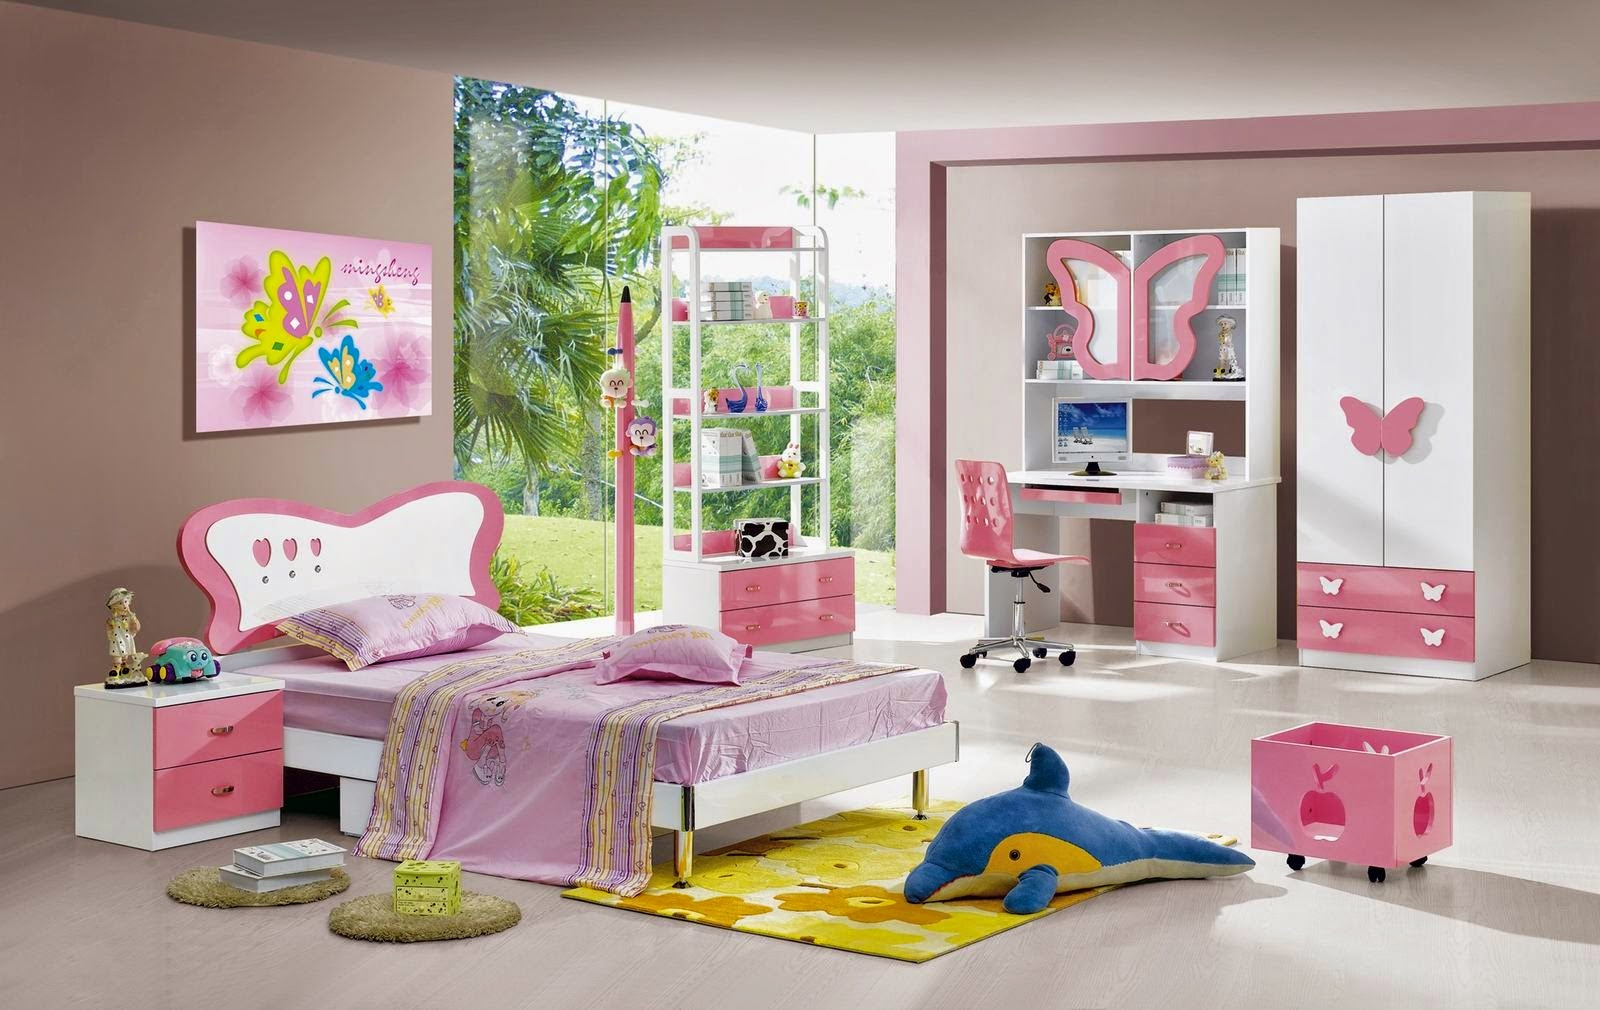 Inspirational Kids Room Design Ideas Interior House Of Bedrooms Bedroom Pretty Living Study Contemporary Small Teen Designs Modern Art Simple Inspiration Apppie Org